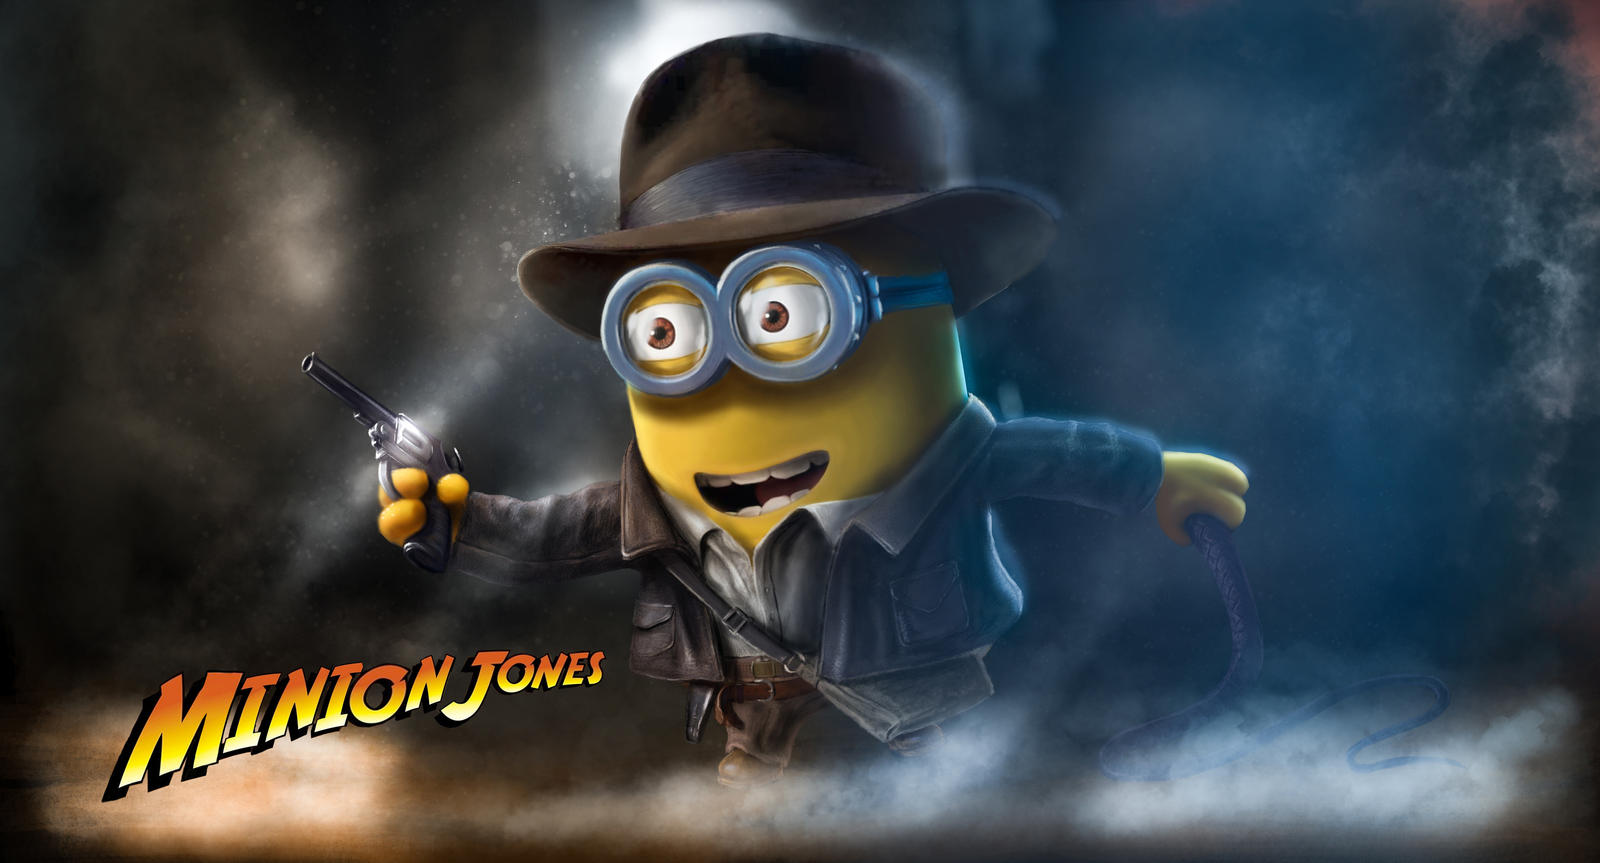 Minion Indiana Jones Art by AlexanderLevett